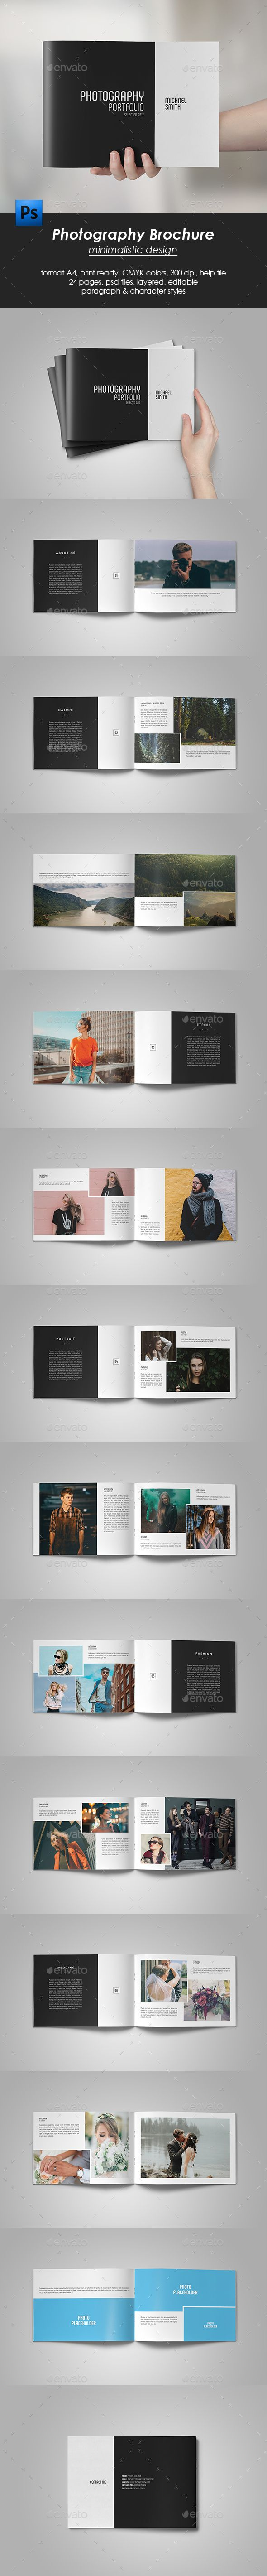 Photography Portfolio Brochure — Photoshop PSD #a4 #corporate • Download ➝ https://graphicriver.net/item/photography-portfolio-brochure/21186831?ref=pxcr